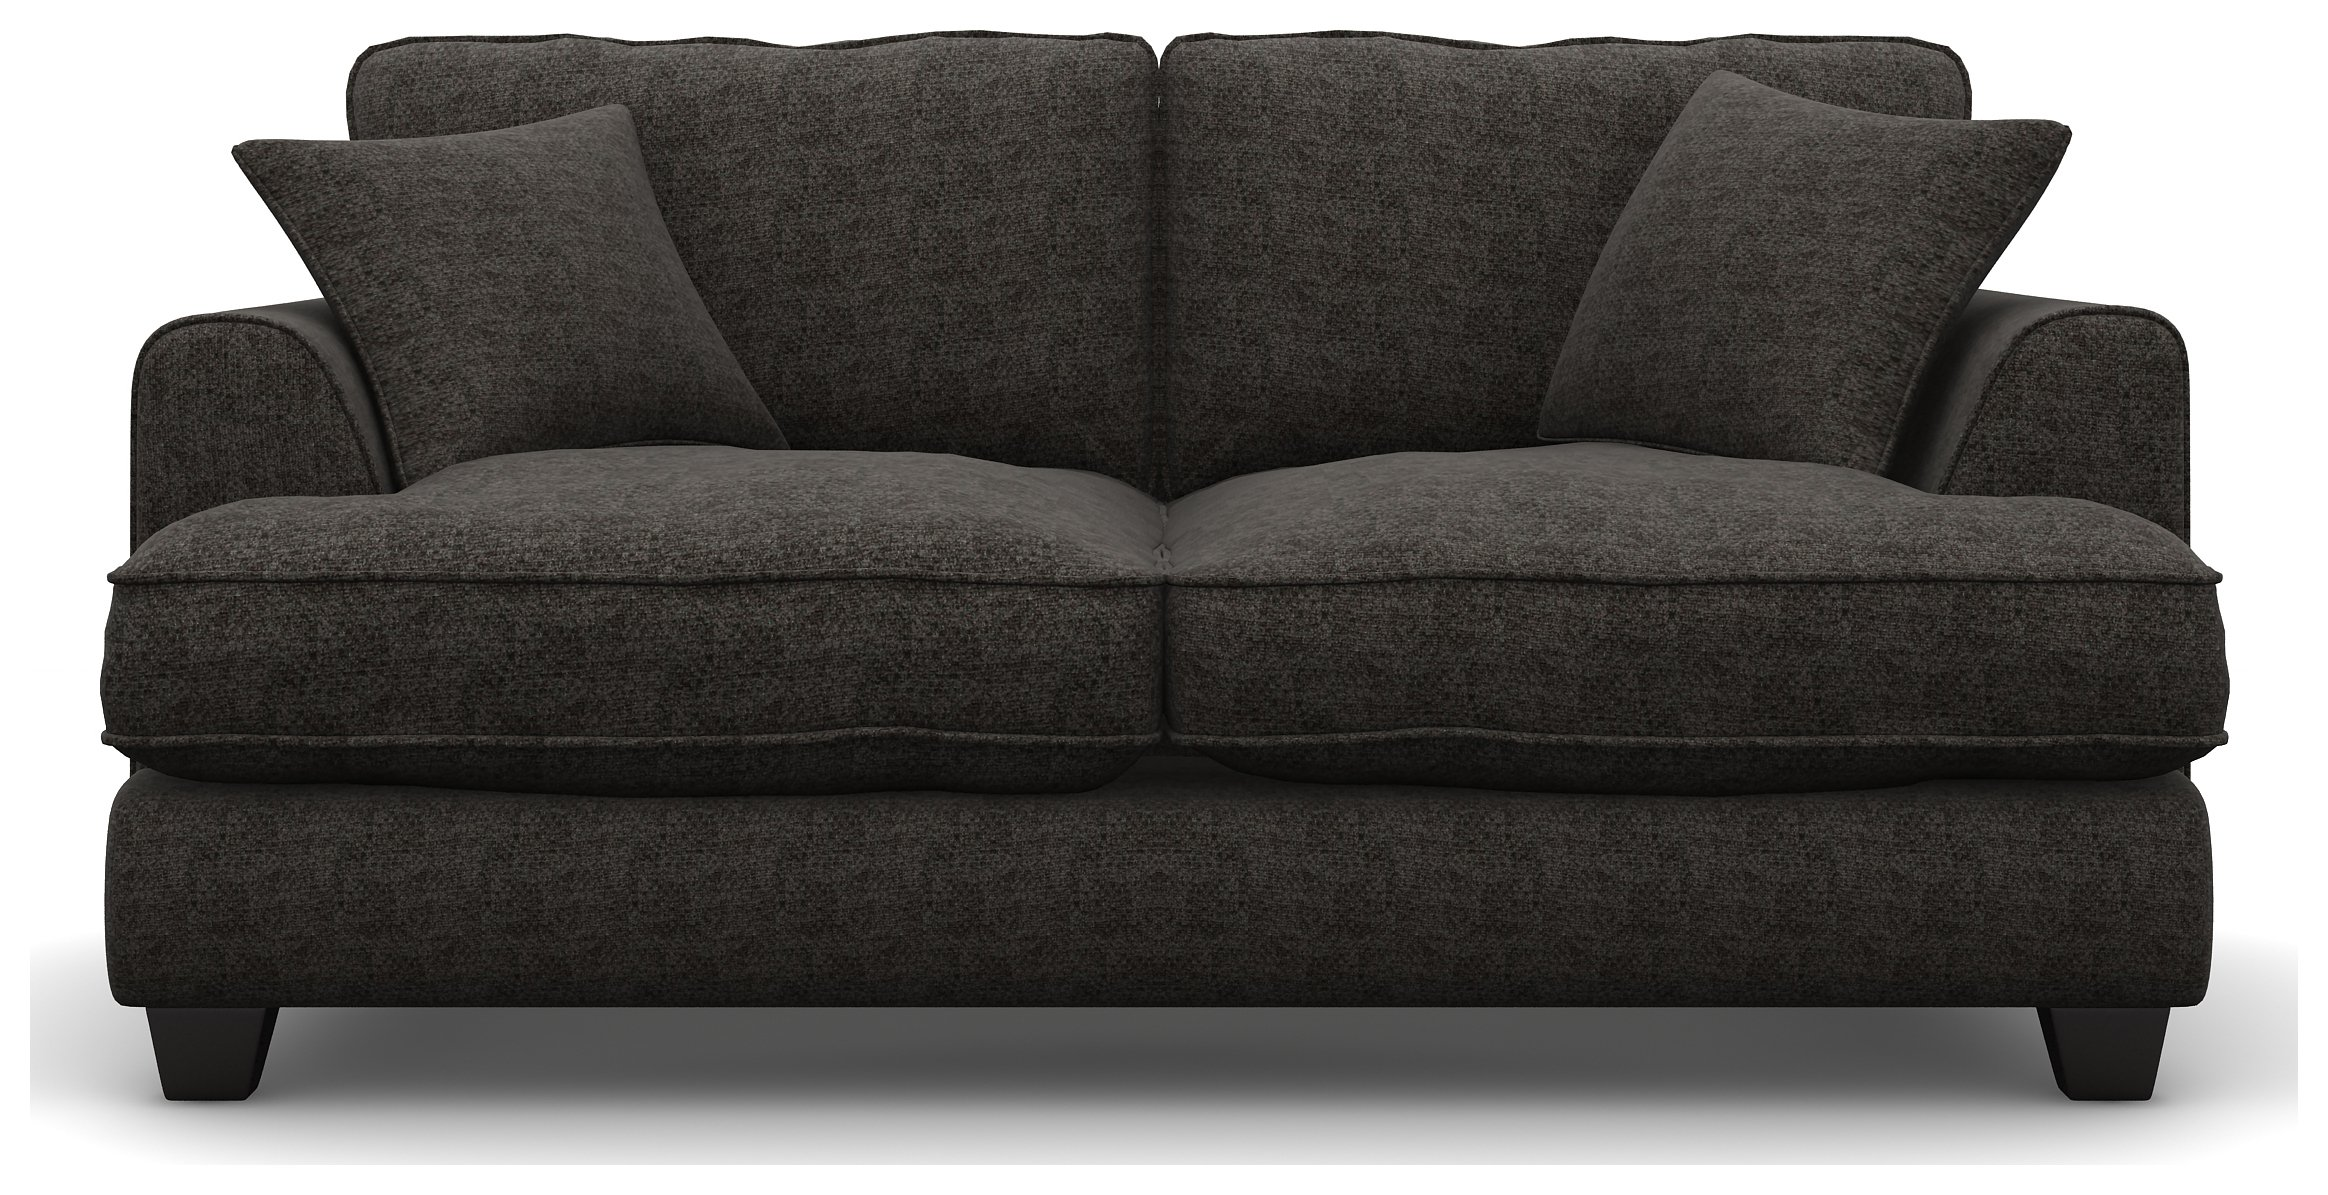 Heart of House Hampstead 2 Seater Fabric Sofa - Charcoal.